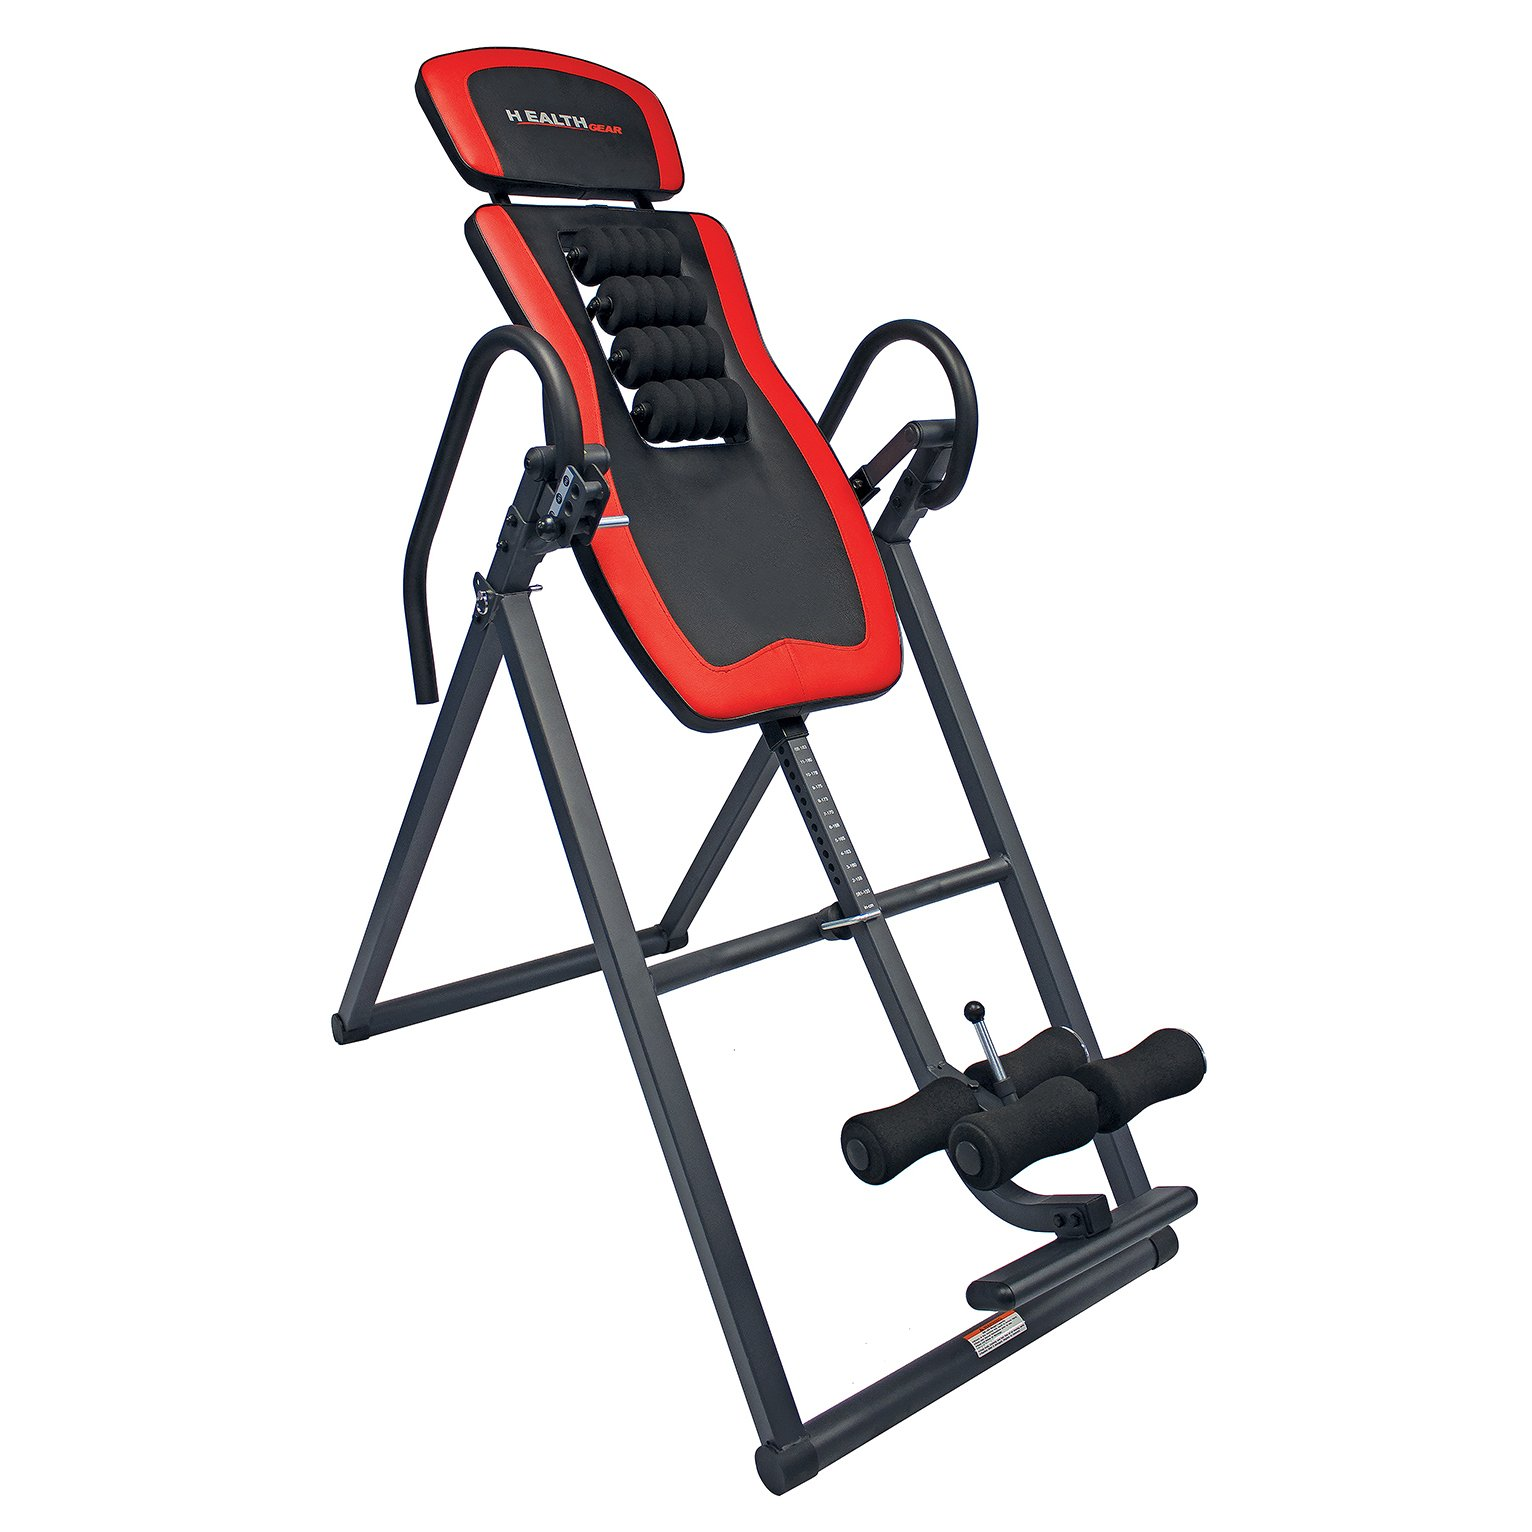 Health Gear ITR3.0-R Patented Roller Massage Inversion Table